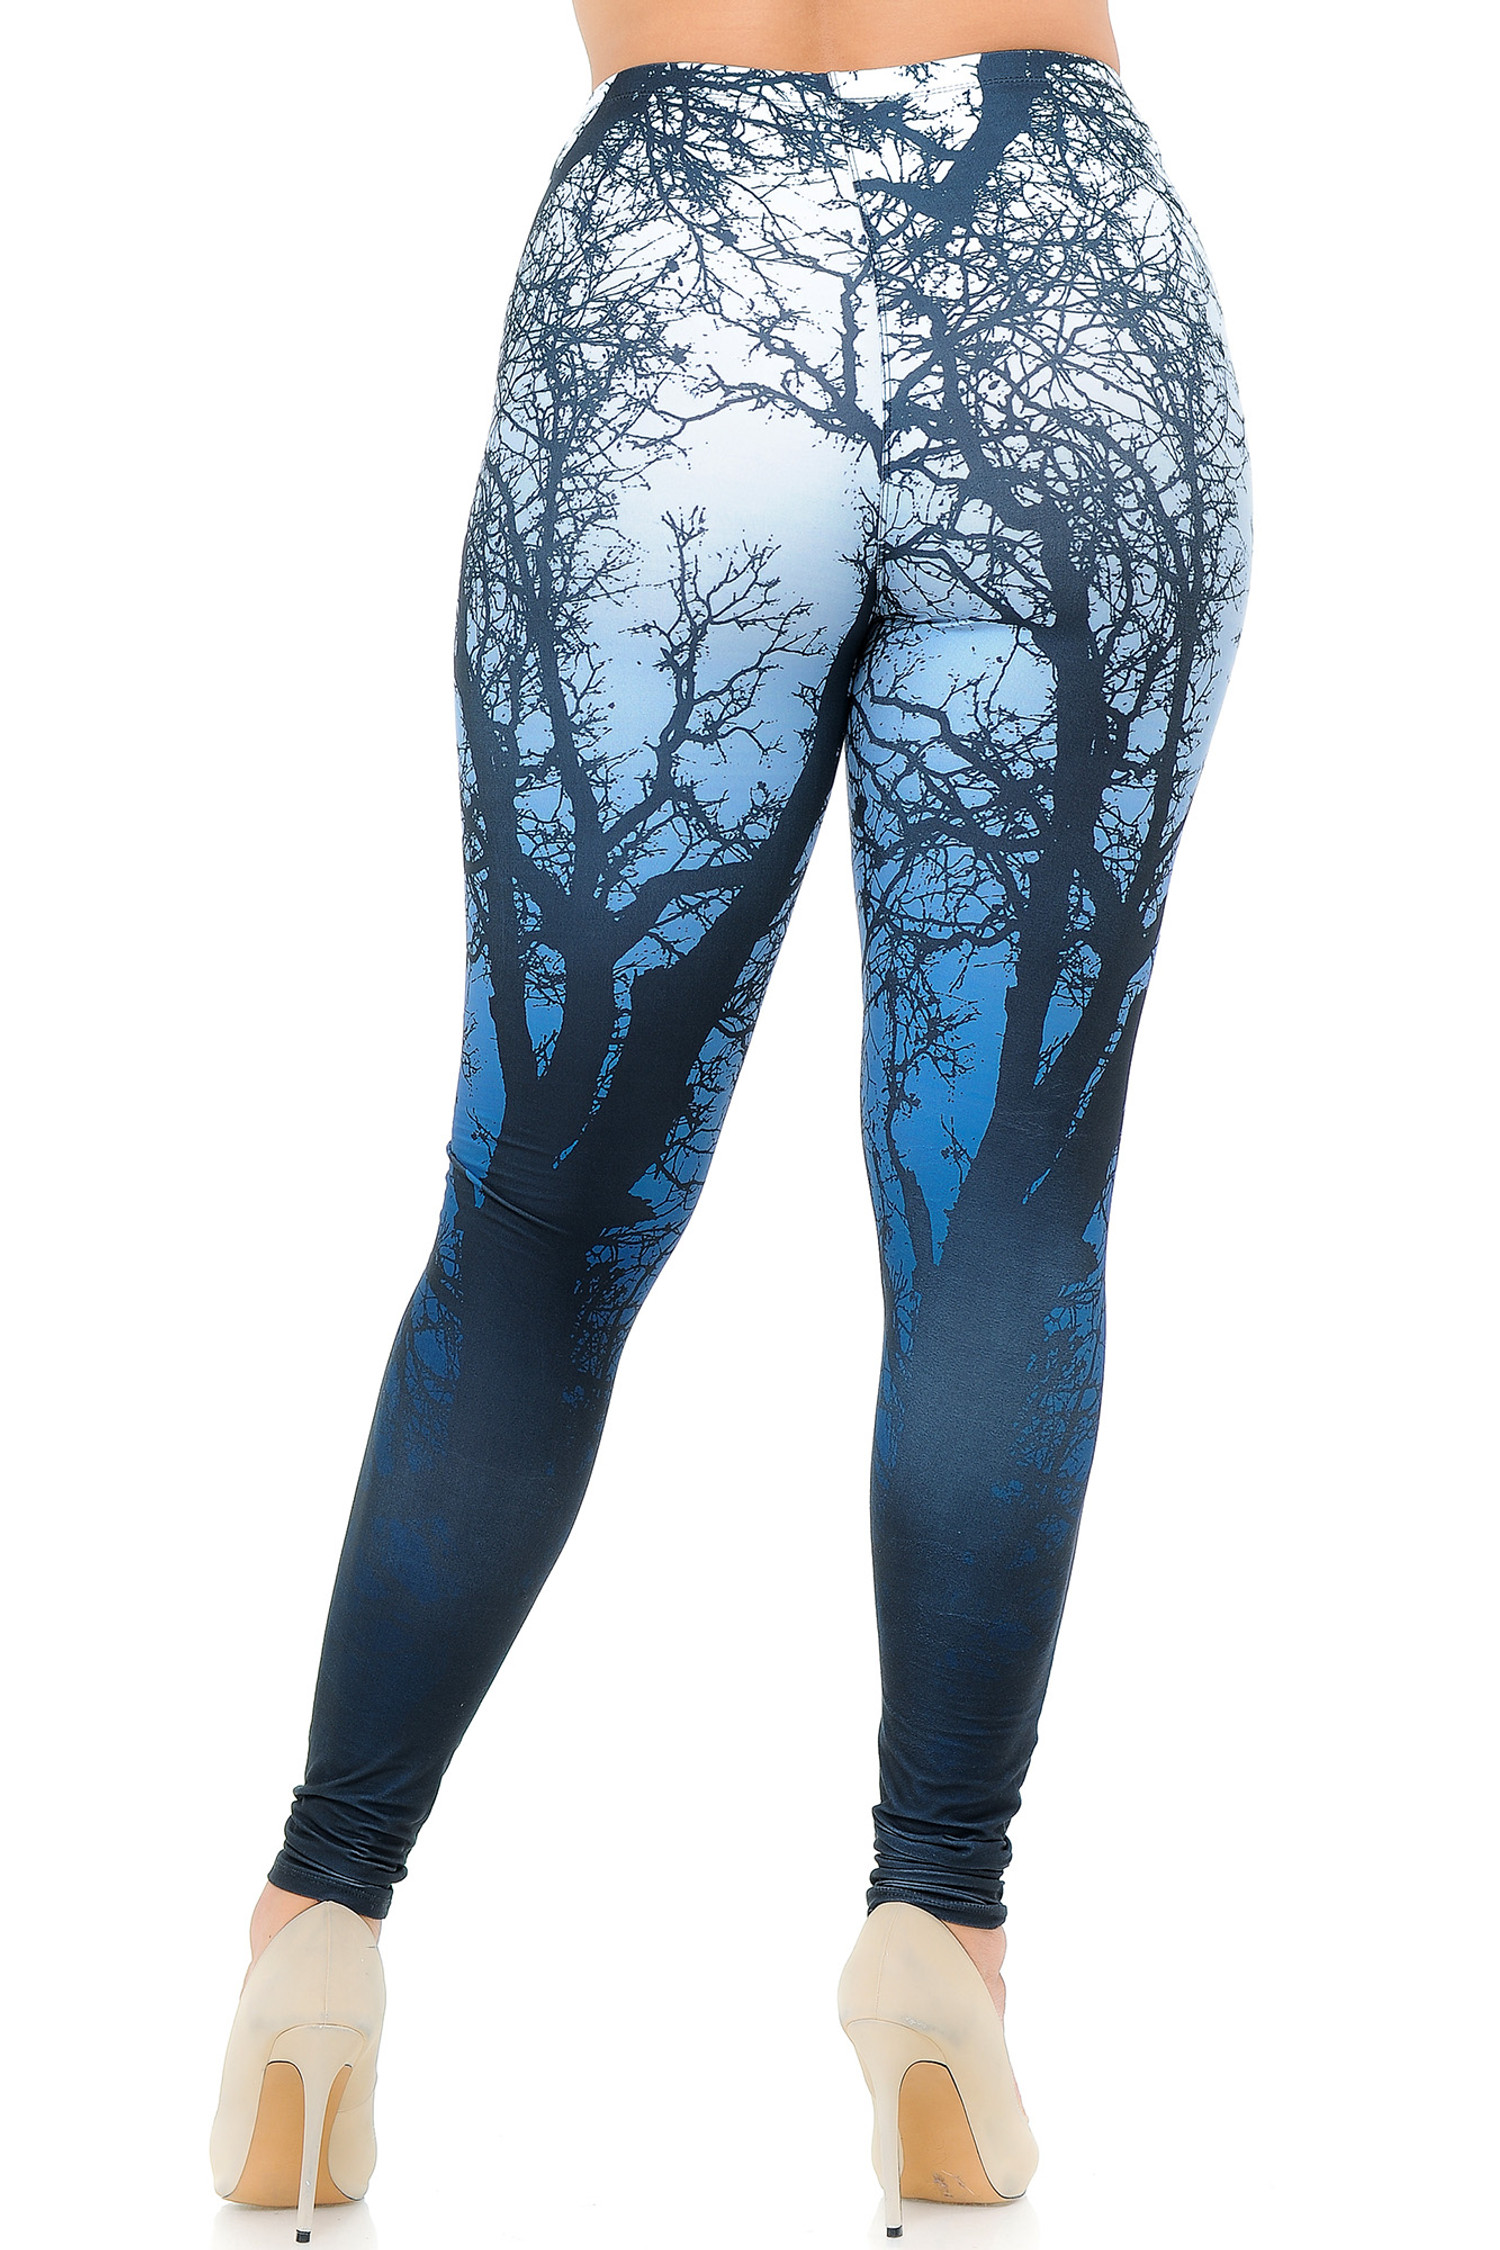 Creamy Soft Ombre Forest Plus Size Leggings - USA Fashion™